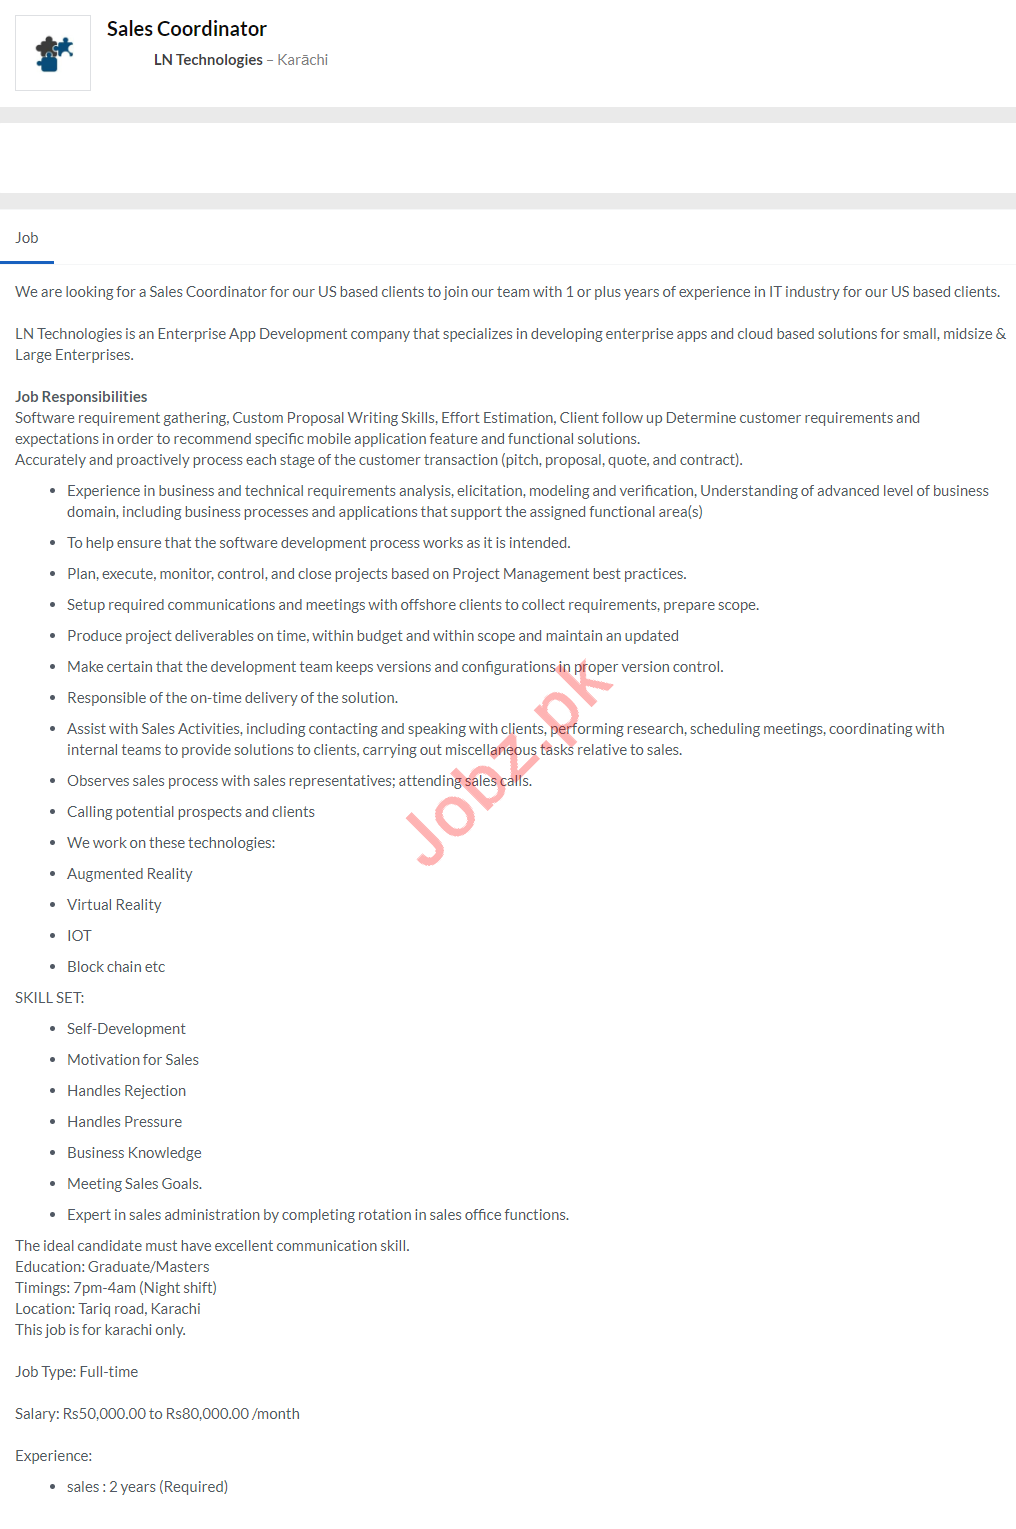 LN Technologies Jobs 2020 in Karachi for Sales Coordinator